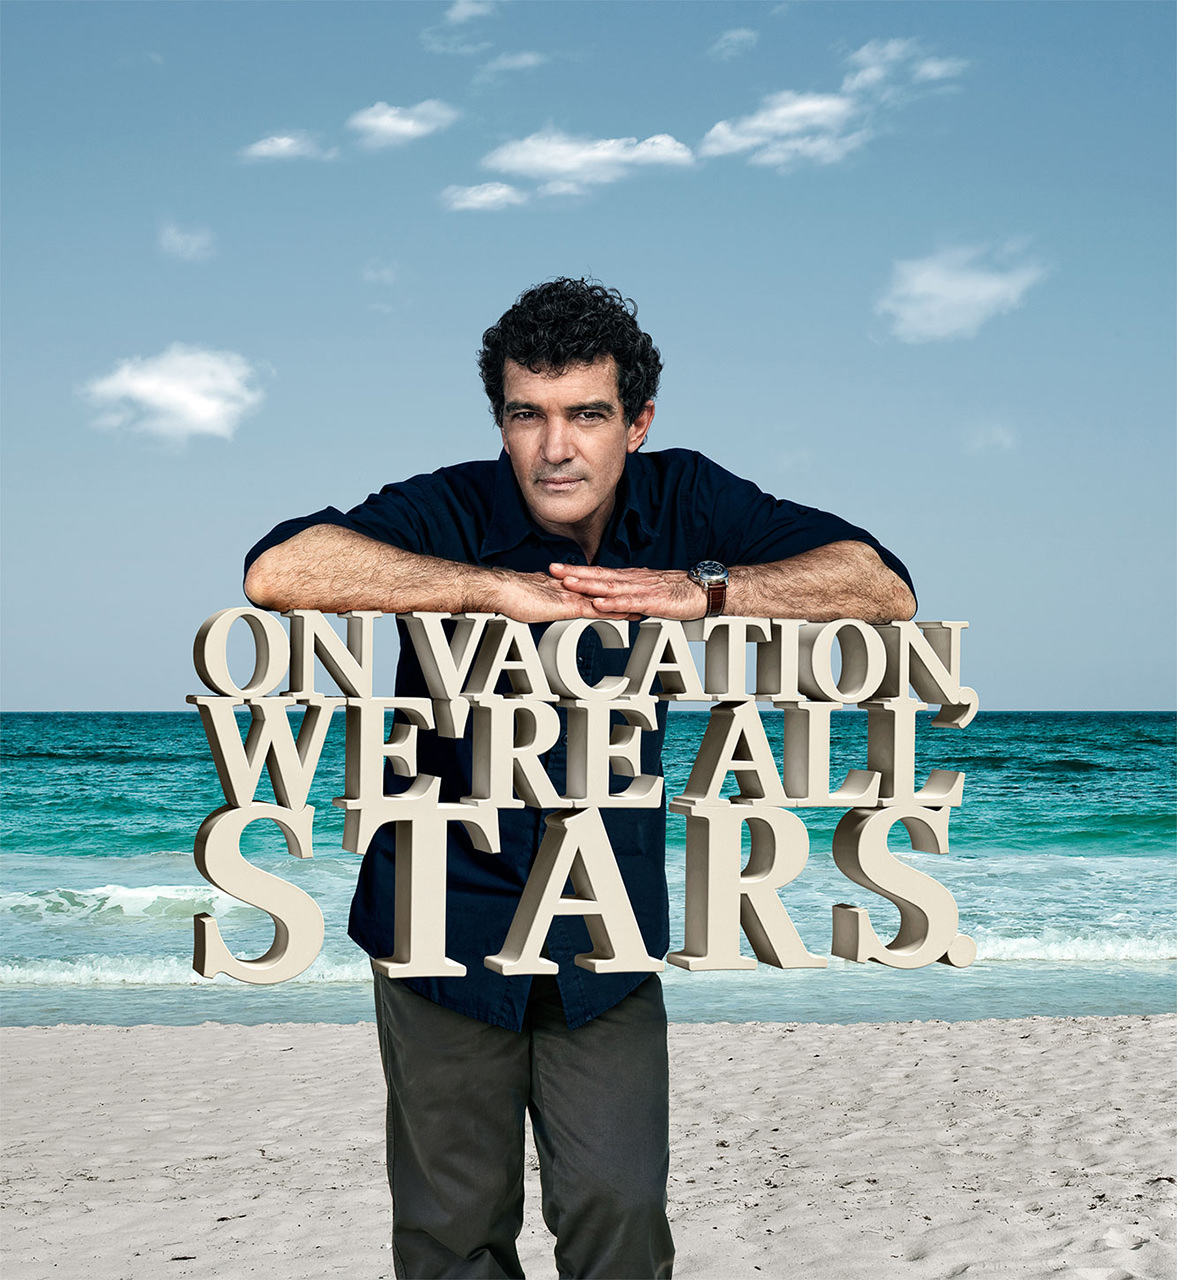 Iberostar ad campaign with celebrity Antonio Banderas